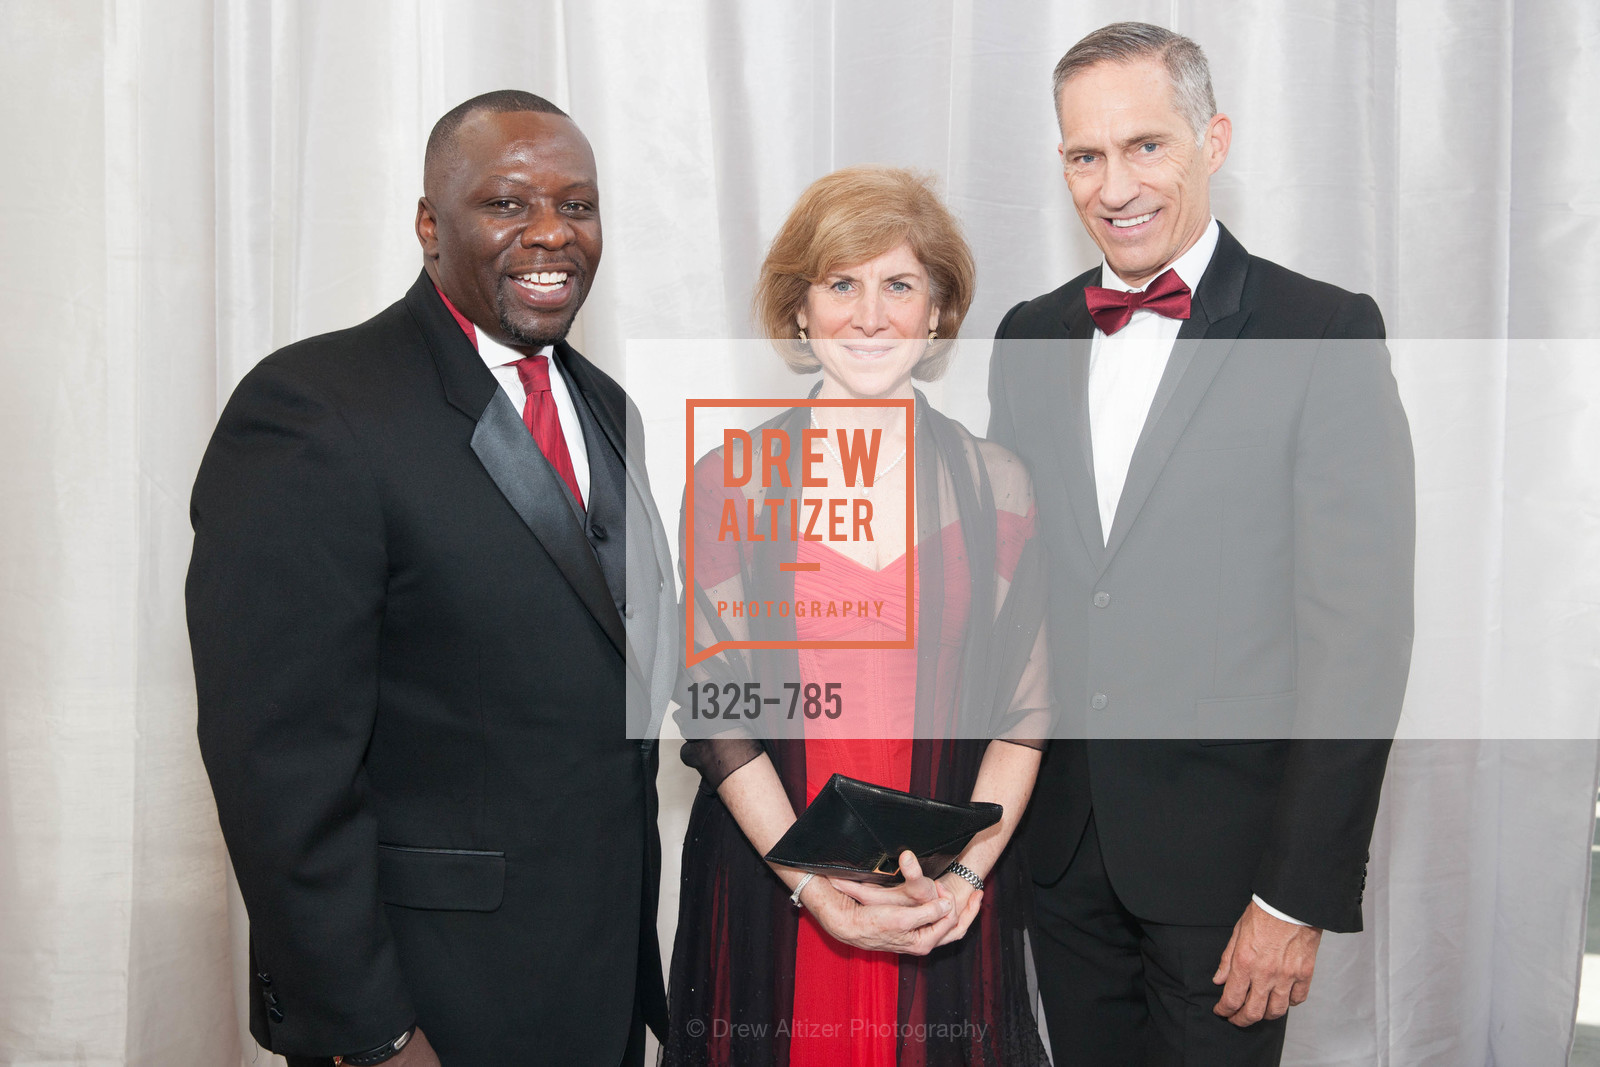 Keith White, Gail McGovern, Mark Cloutier, 2015 RED CROSS Gala, US, April 12th, 2015,Drew Altizer, Drew Altizer Photography, full-service agency, private events, San Francisco photographer, photographer california